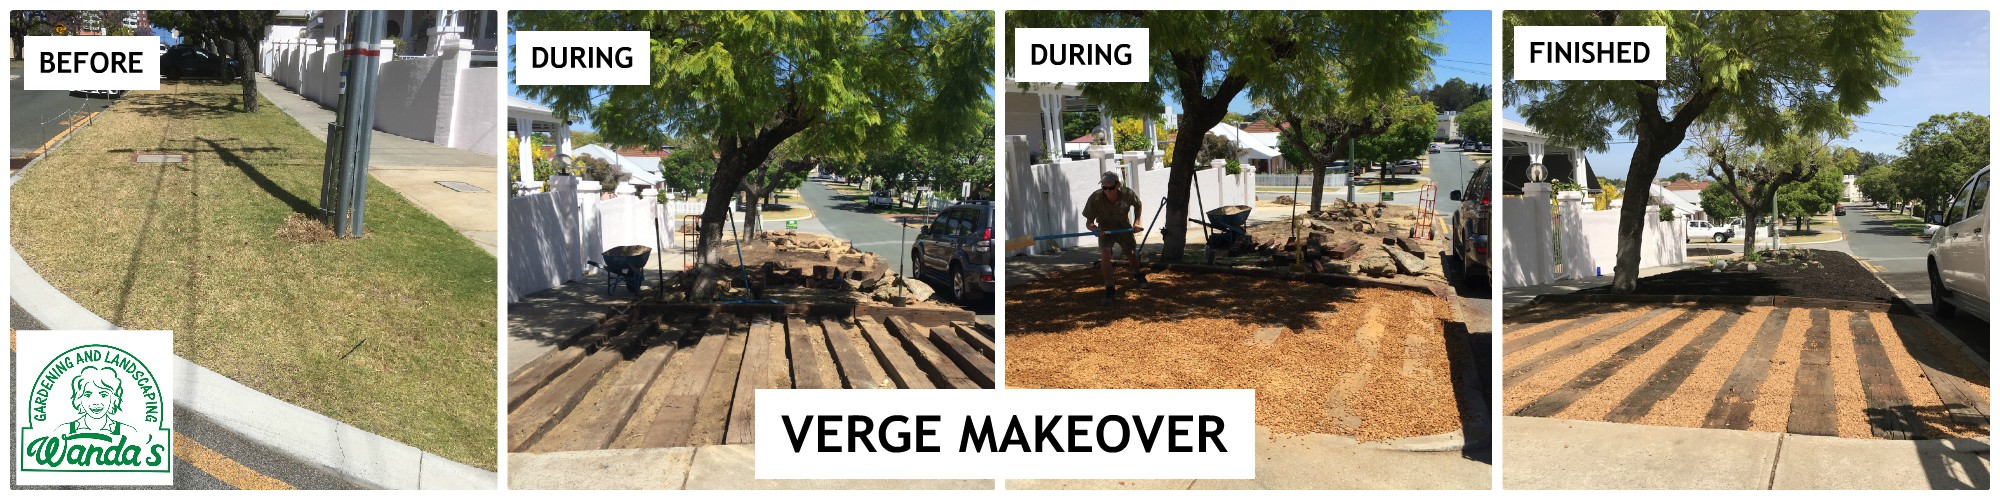 Verge Makeover and Matching Review